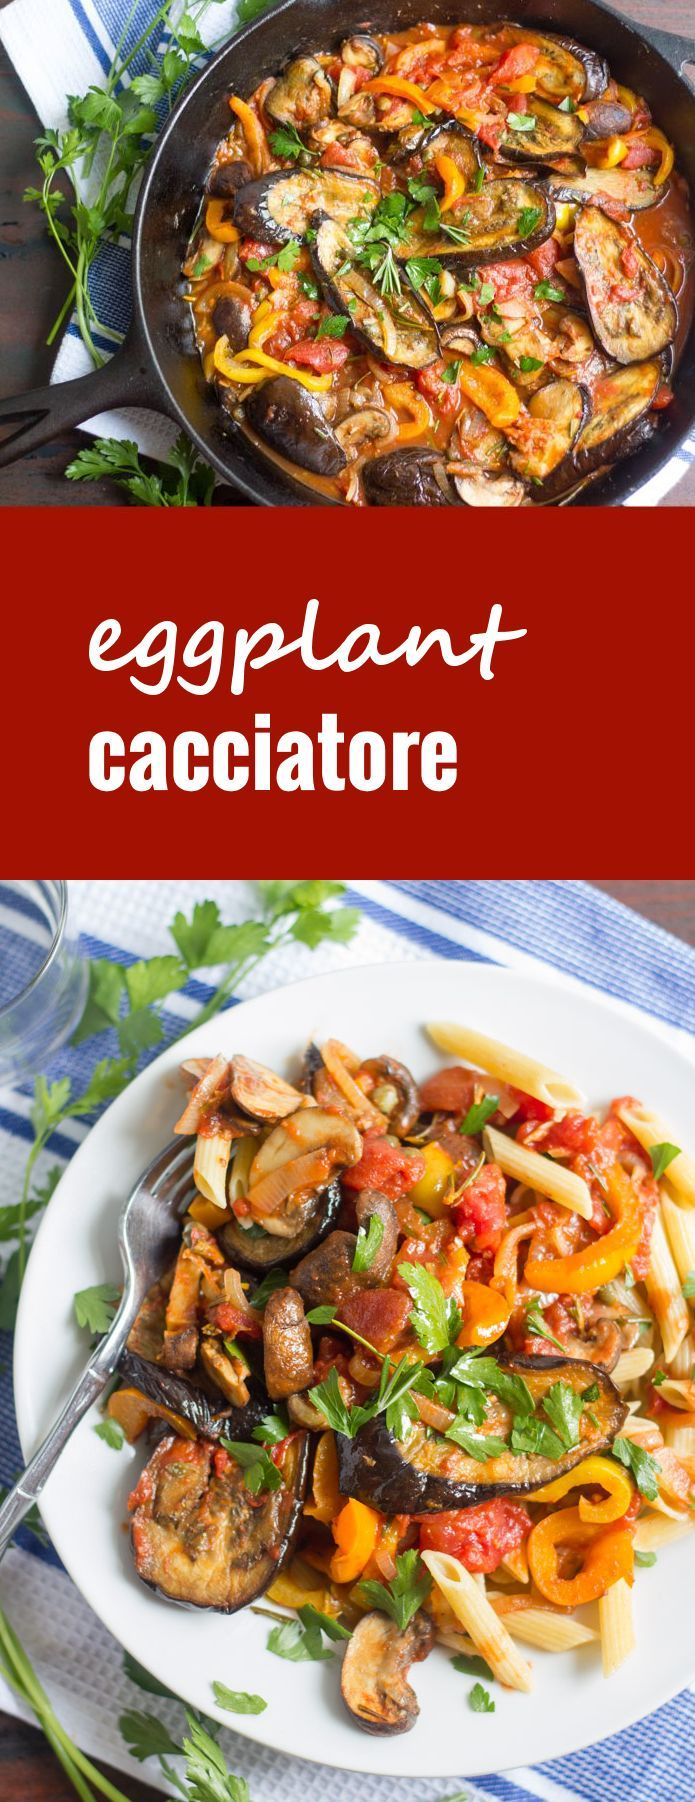 This vegan eggplant cacciatore is made with